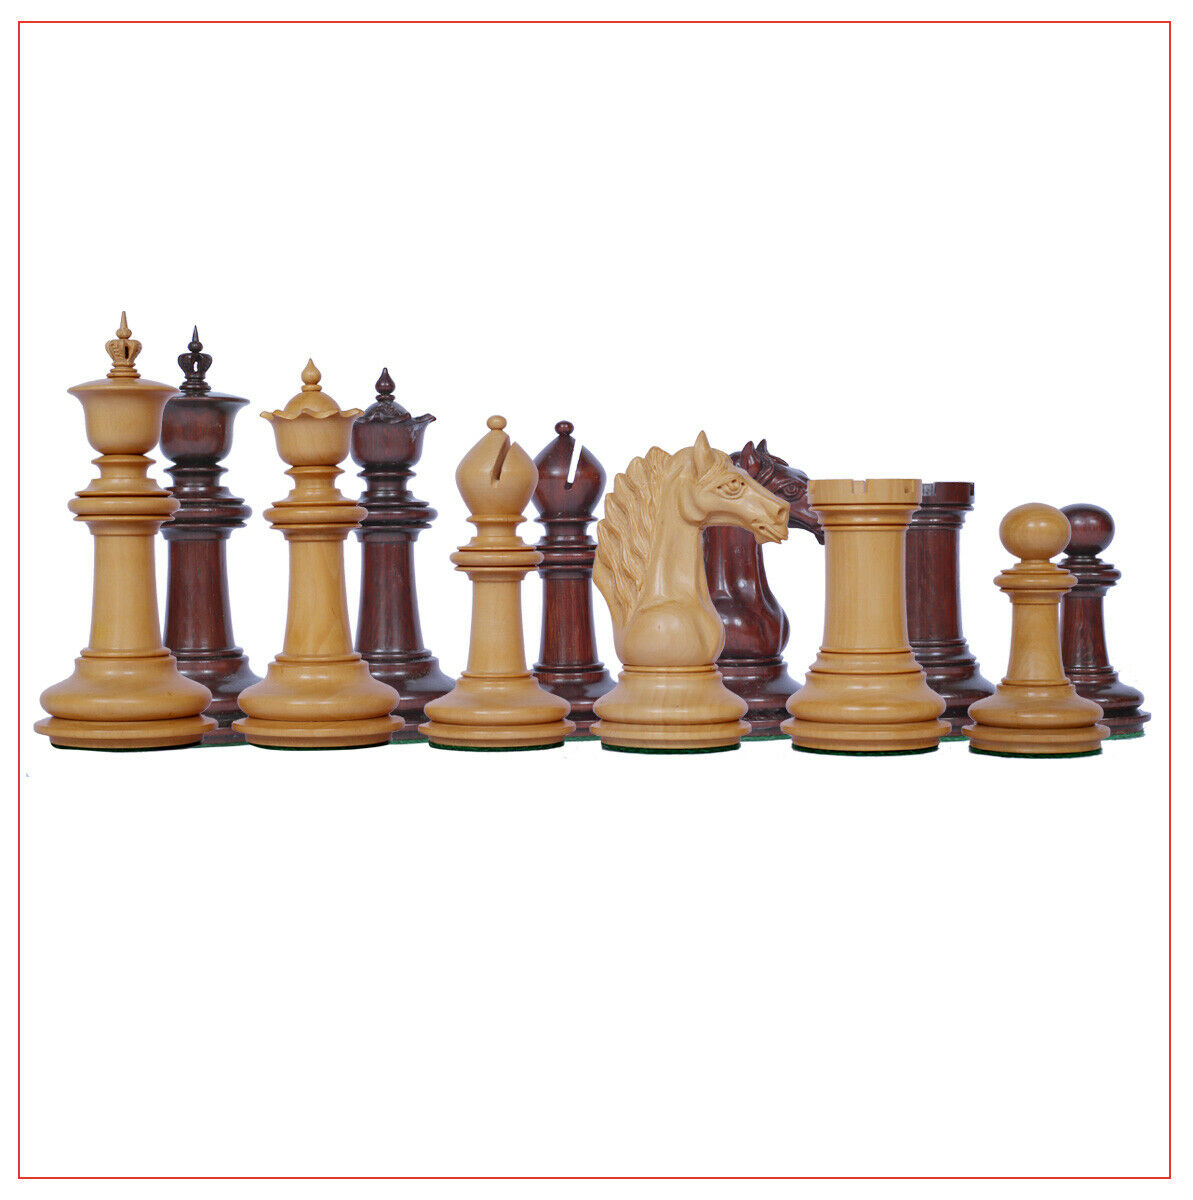 Macedon Series 4.4  Luxury  Staunton Chess Set in  Padouk e scatola wood  salutare